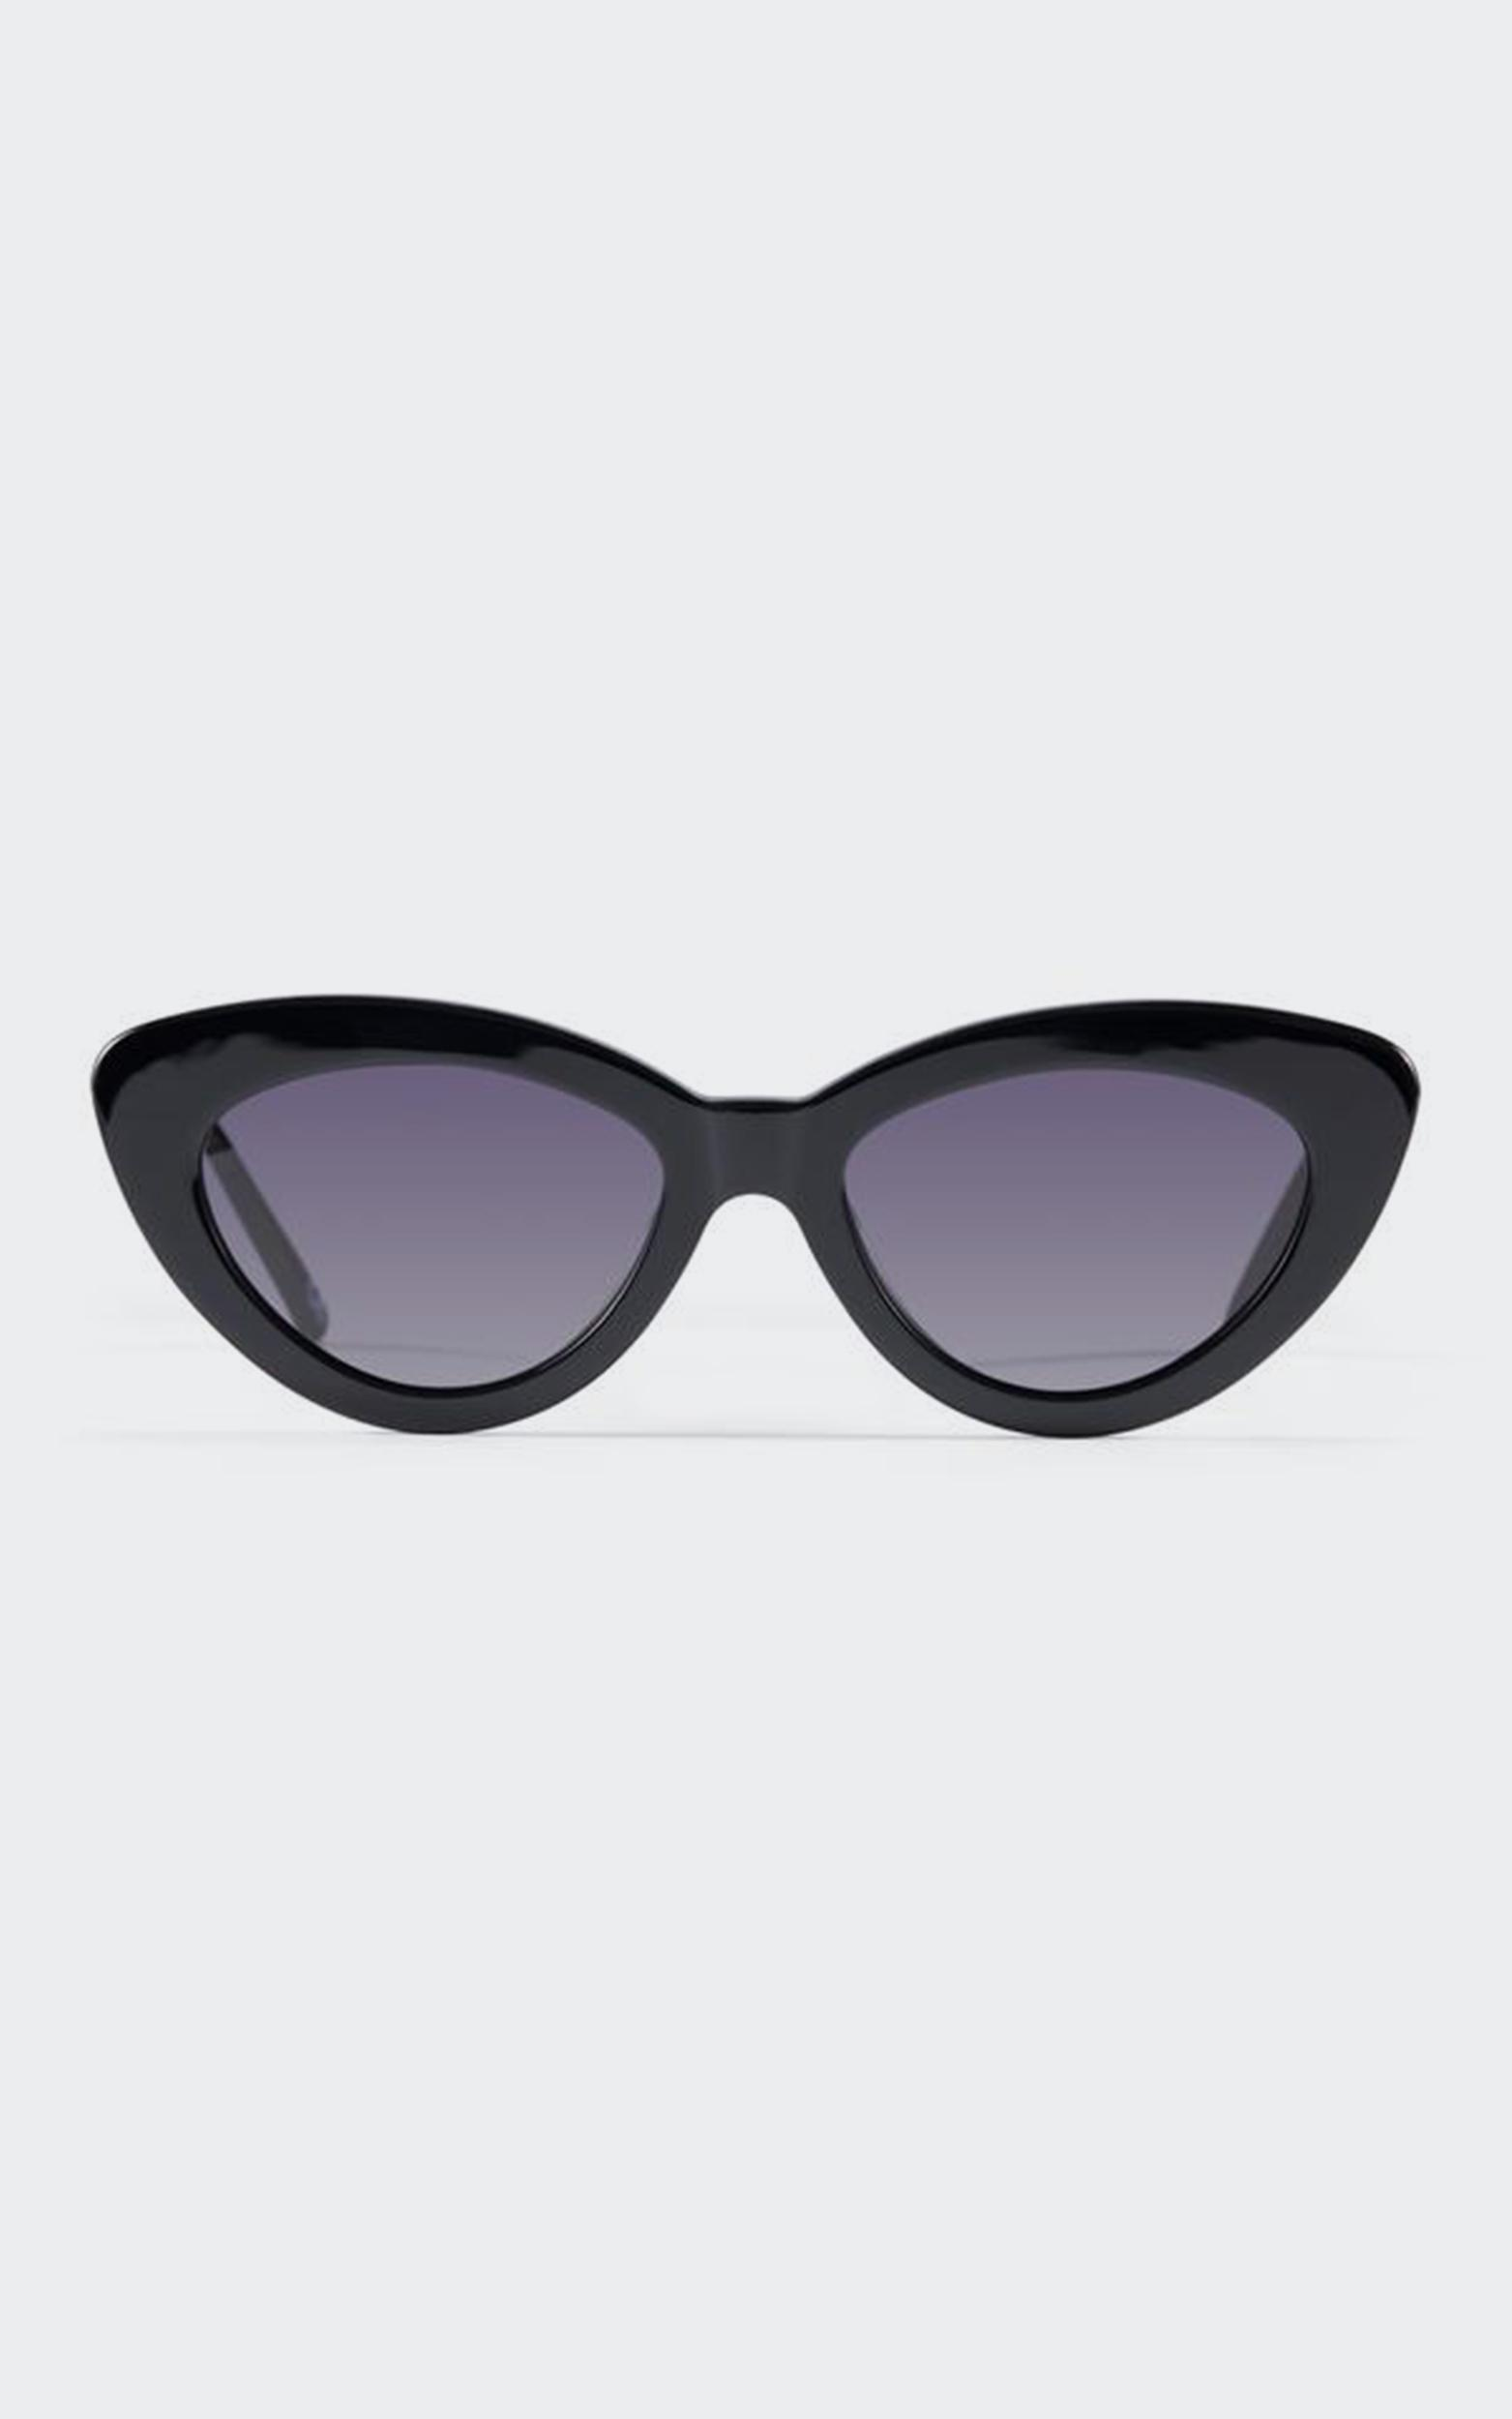 Luv Lou - The Harley Sunglasses in Jet Black, , hi-res image number null